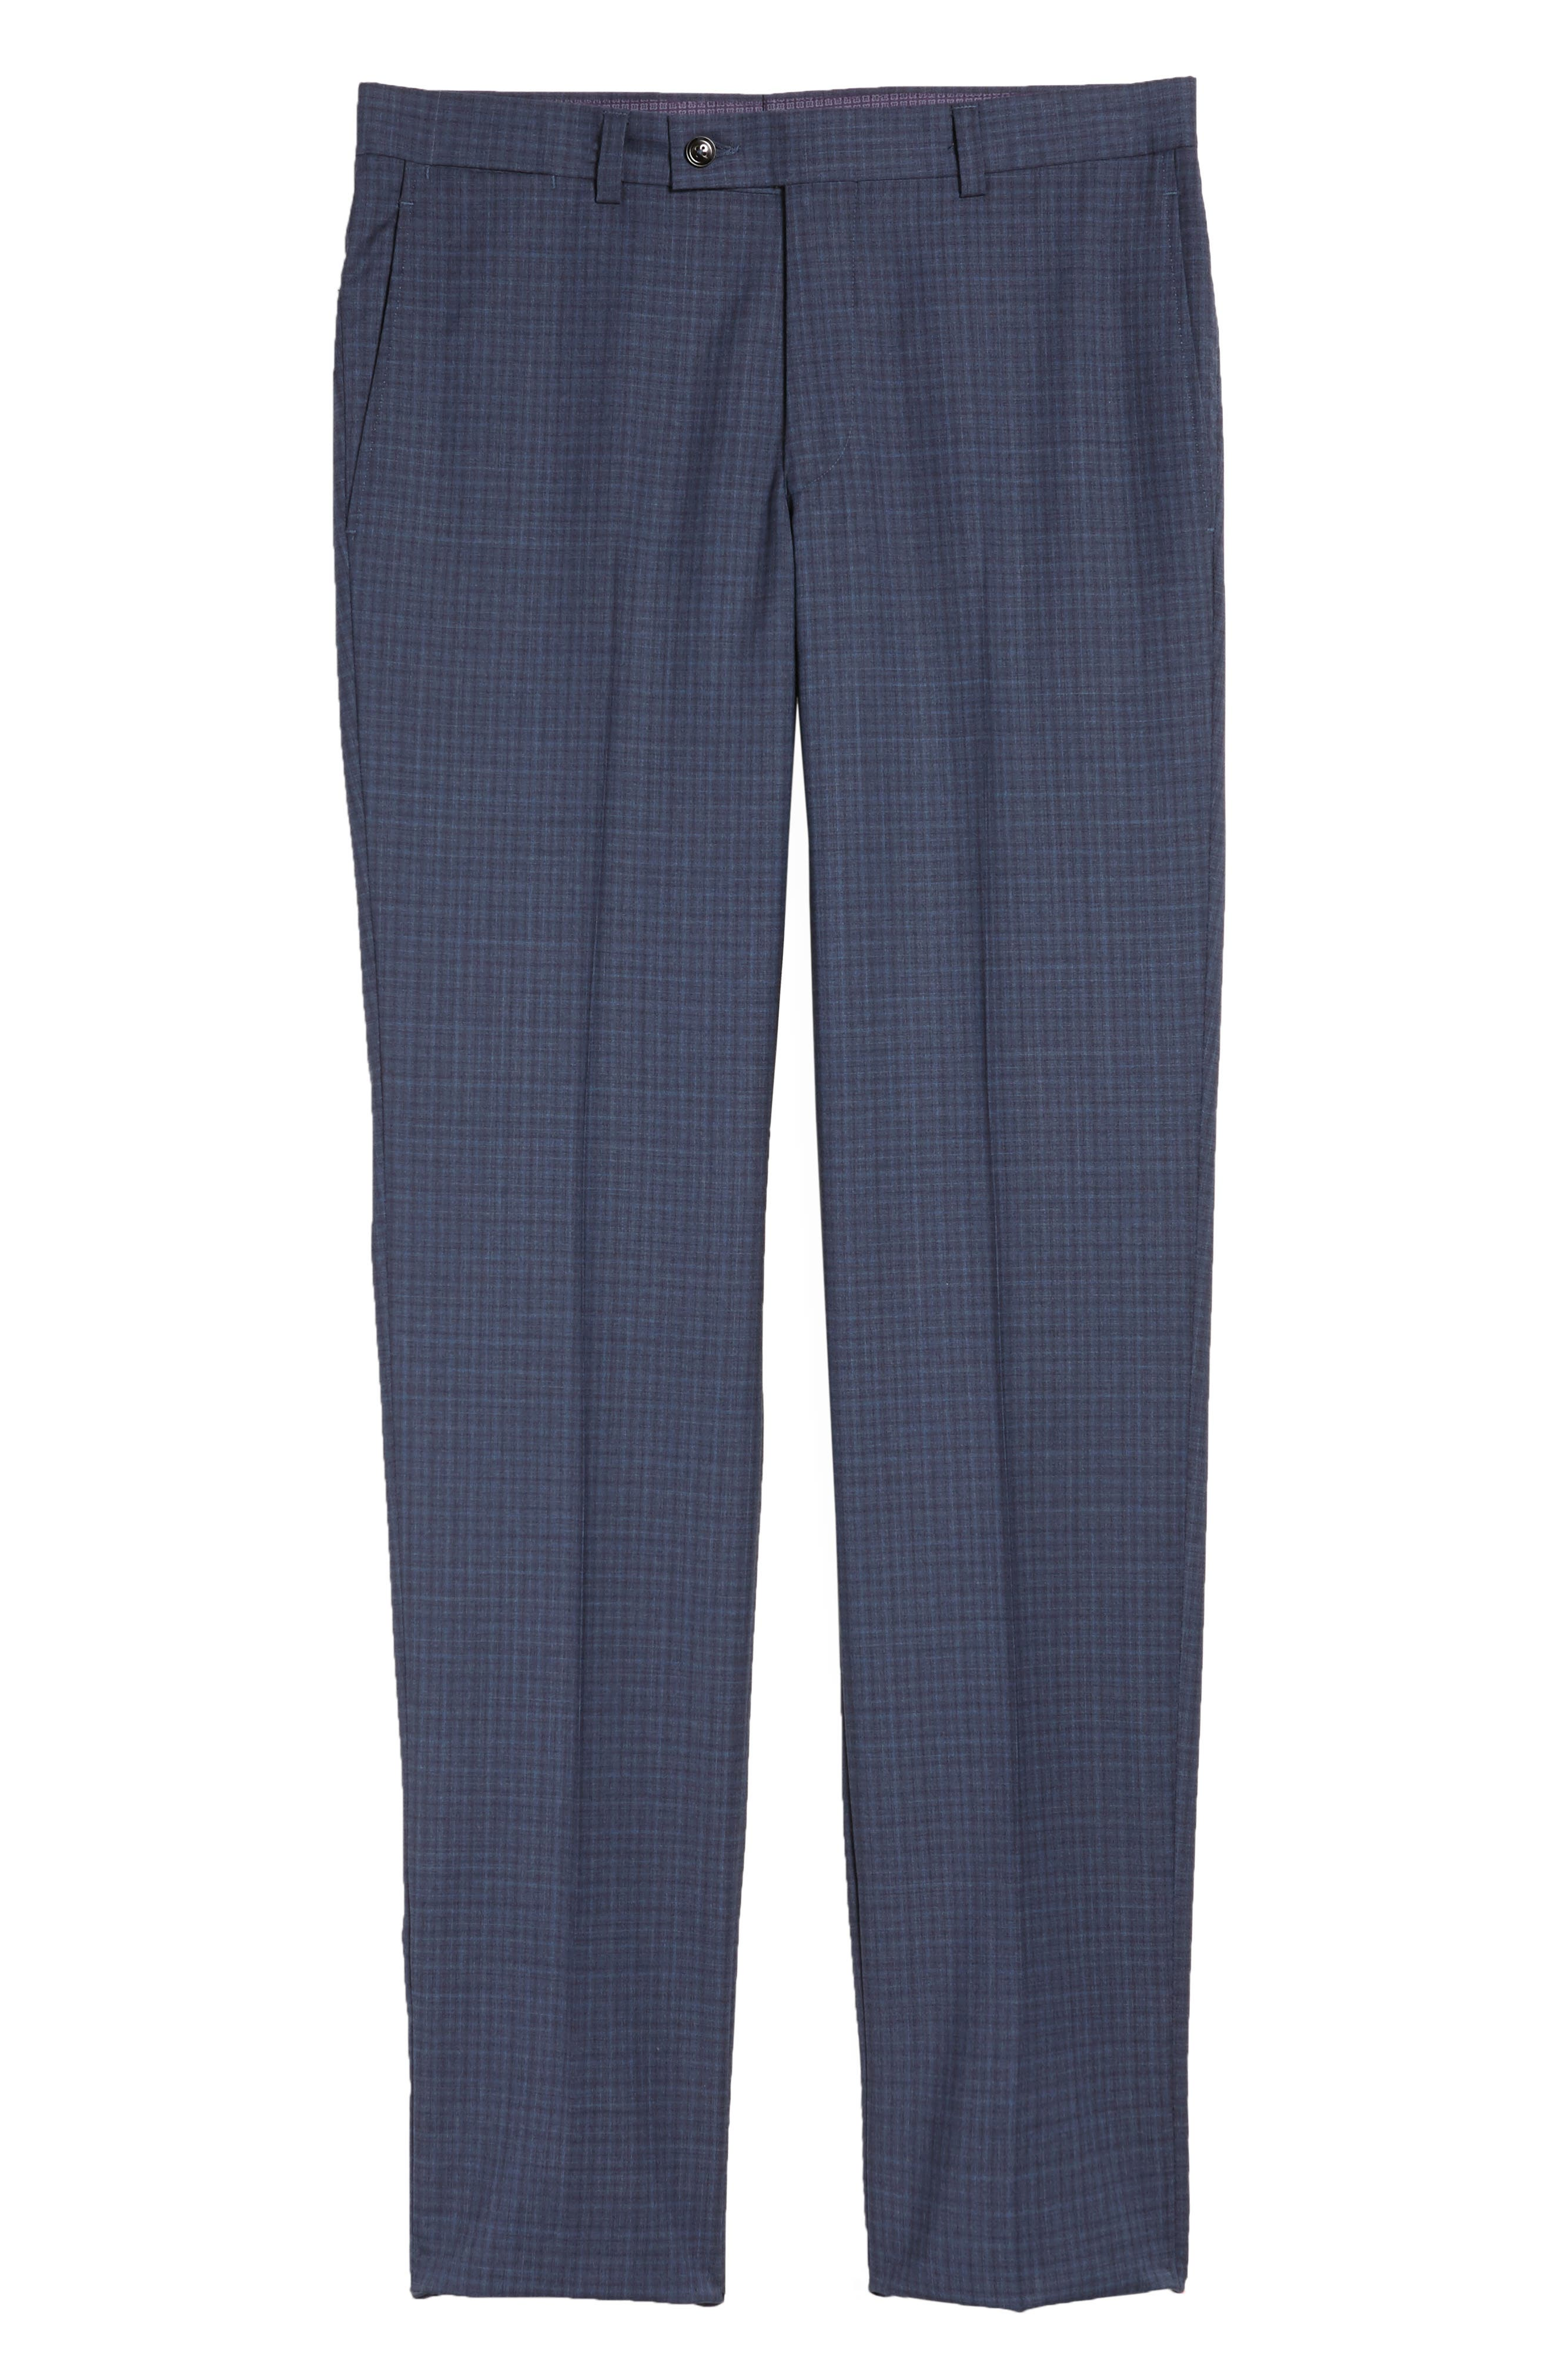 Jefferson Flat Front Check Wool Trousers,                             Alternate thumbnail 6, color,                             Blue